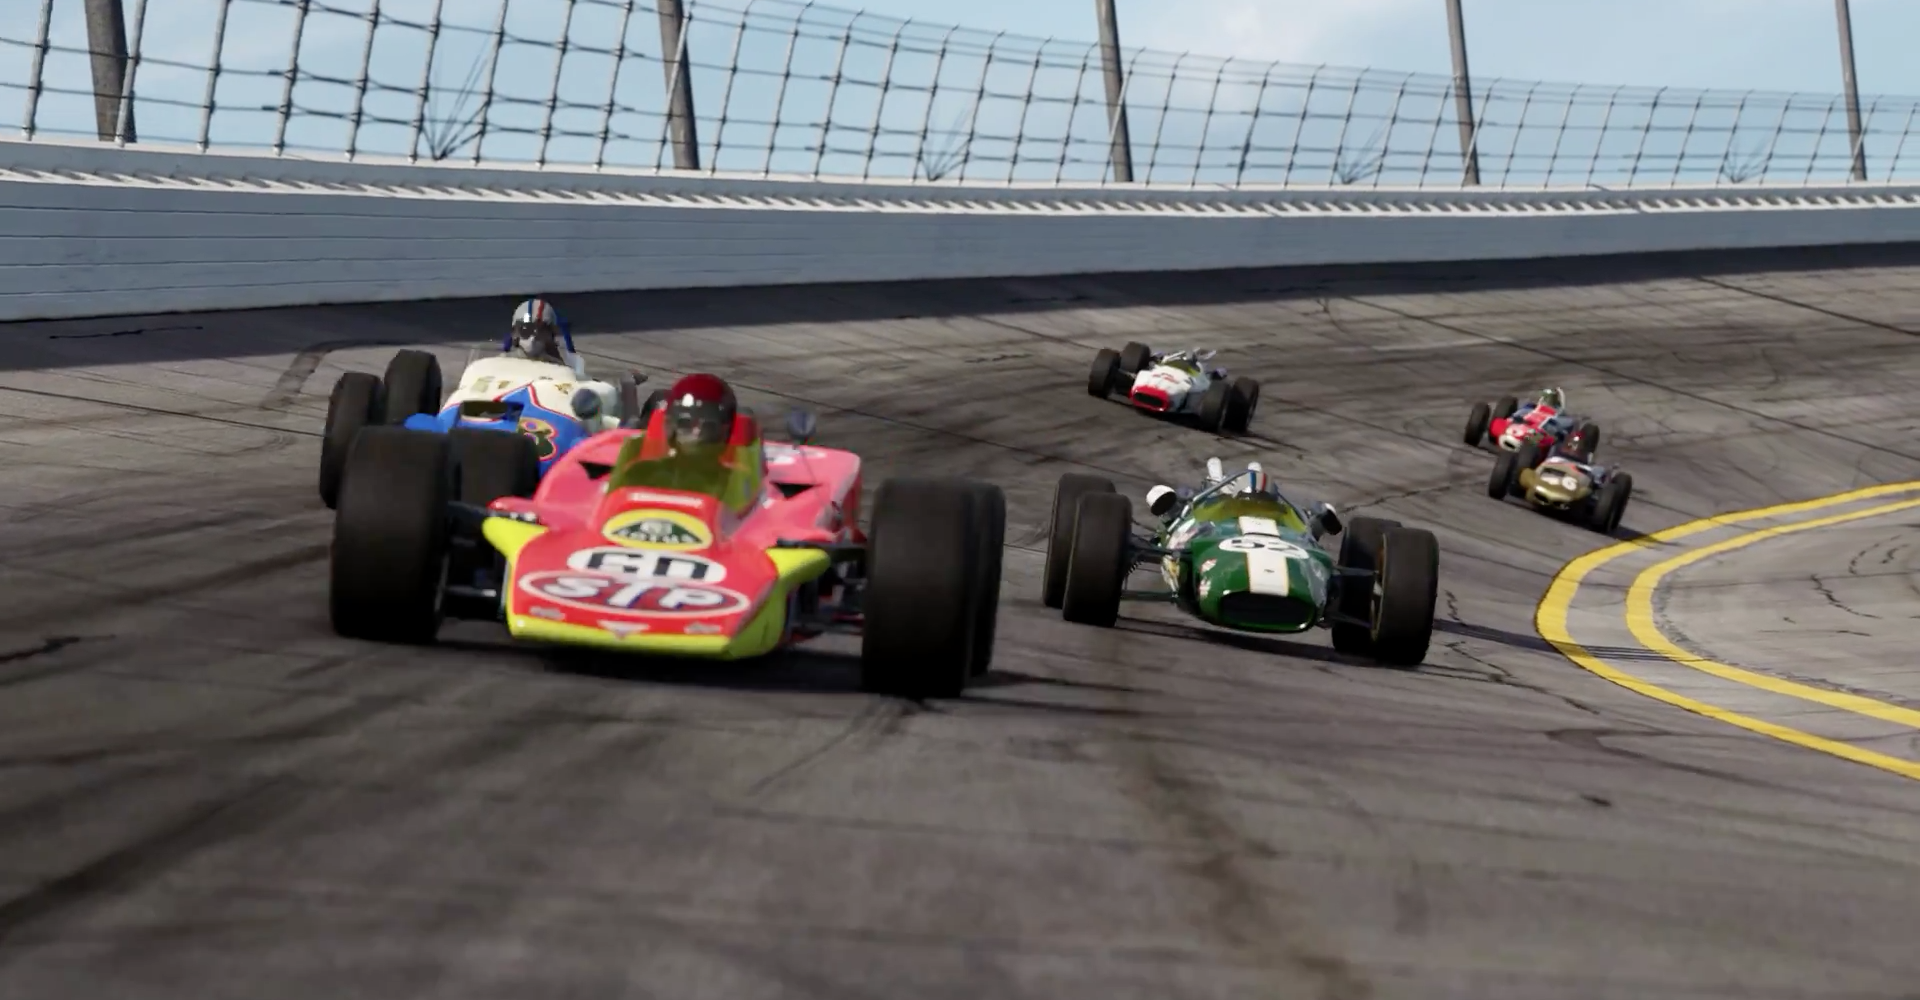 The latest Project Cars 2 trailer has dropped – and the excitement ramps up